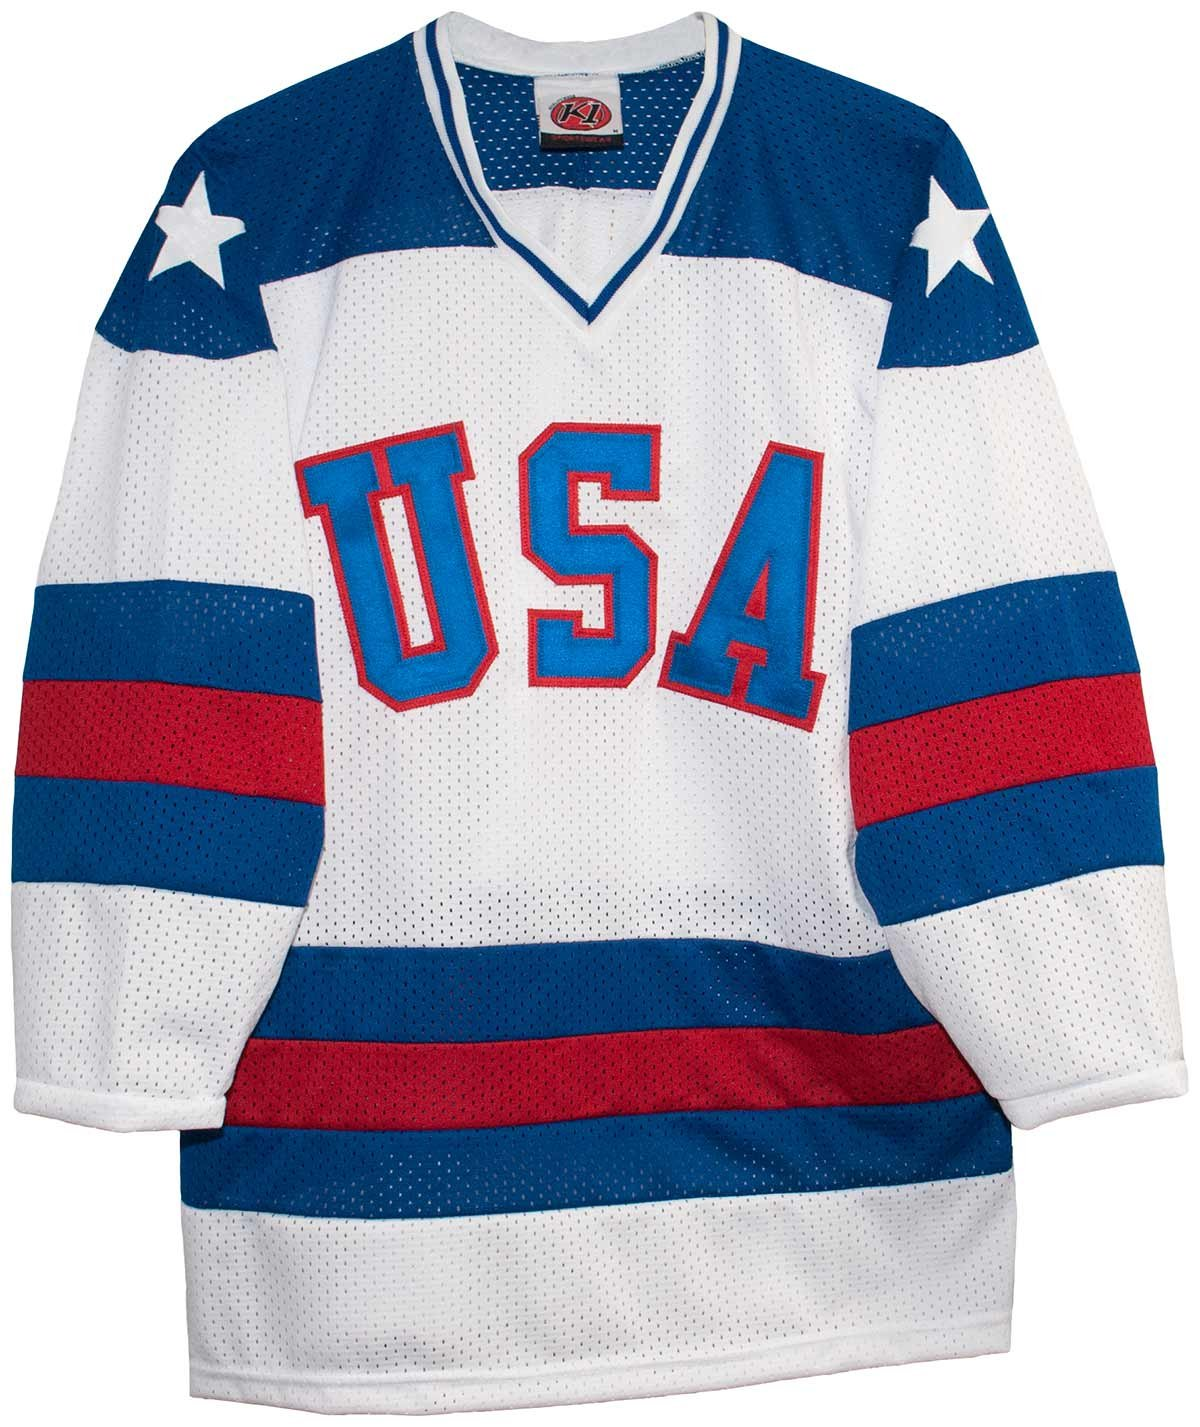 1980 USA Olympic *Miracle On Ice* Replica Home Jersey - Size XX-Large